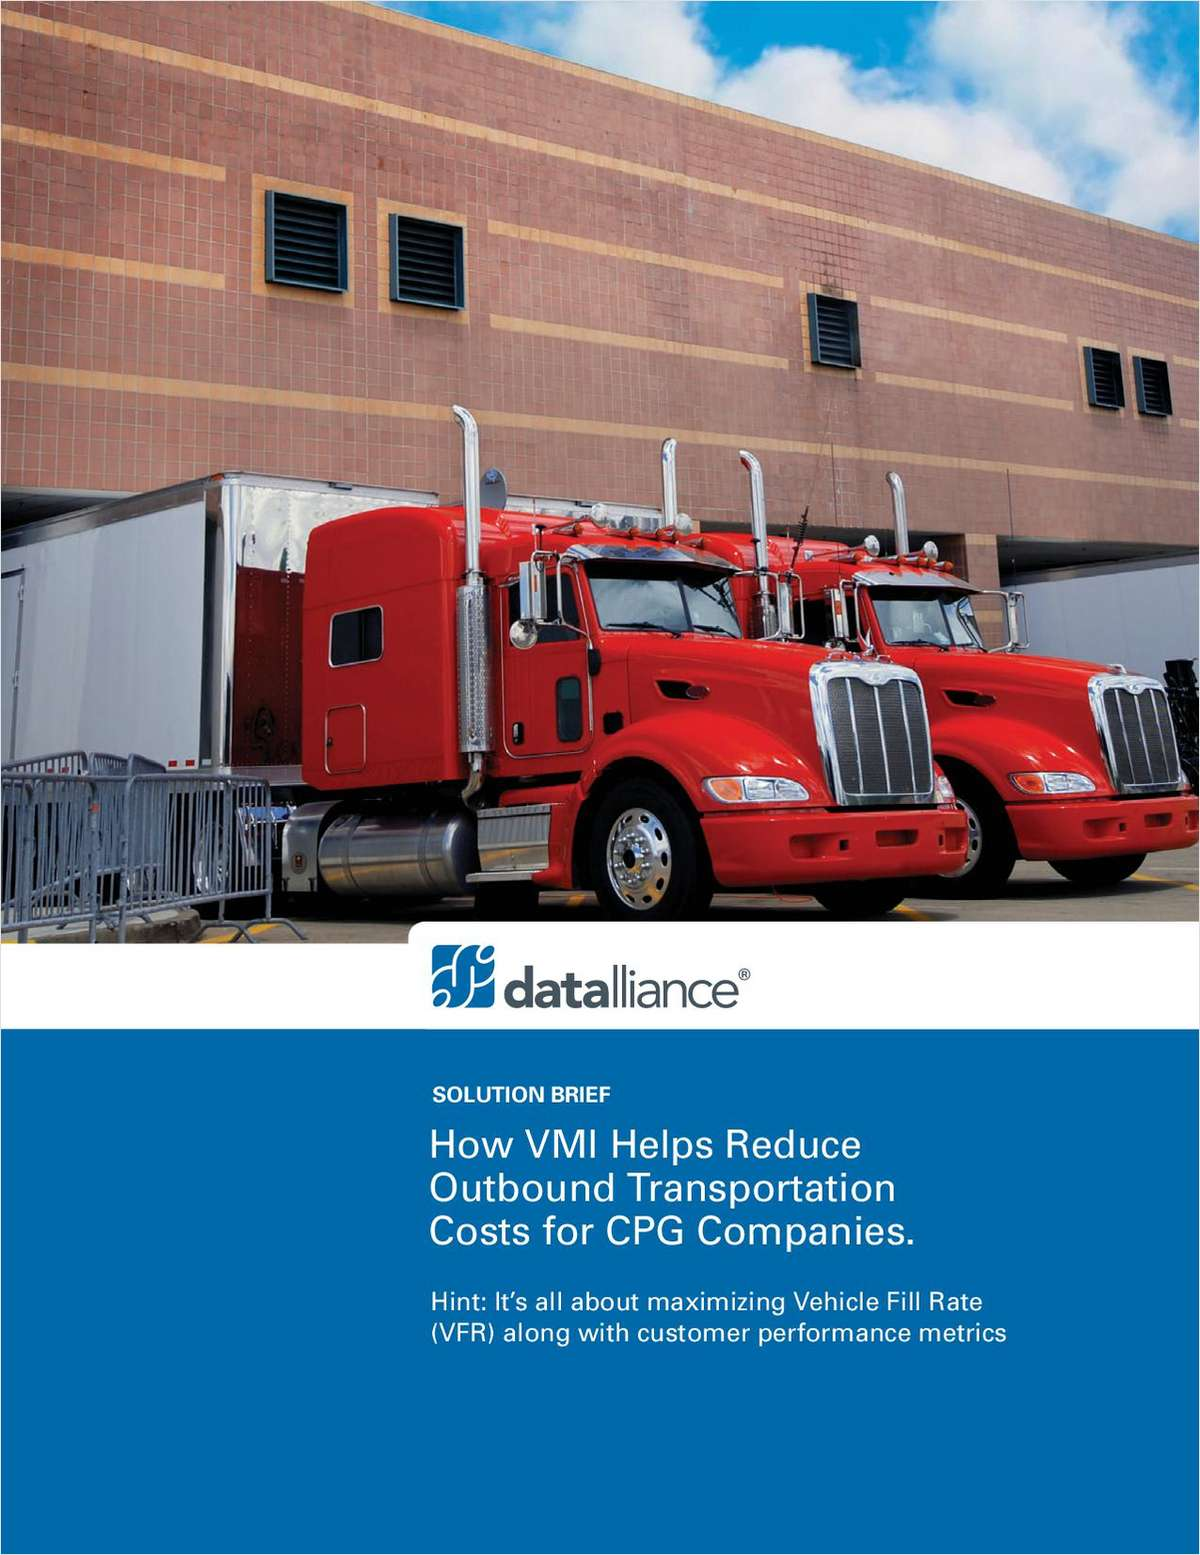 How VMI Helps Reduce Outbound Transportation Costs for CPG Companies